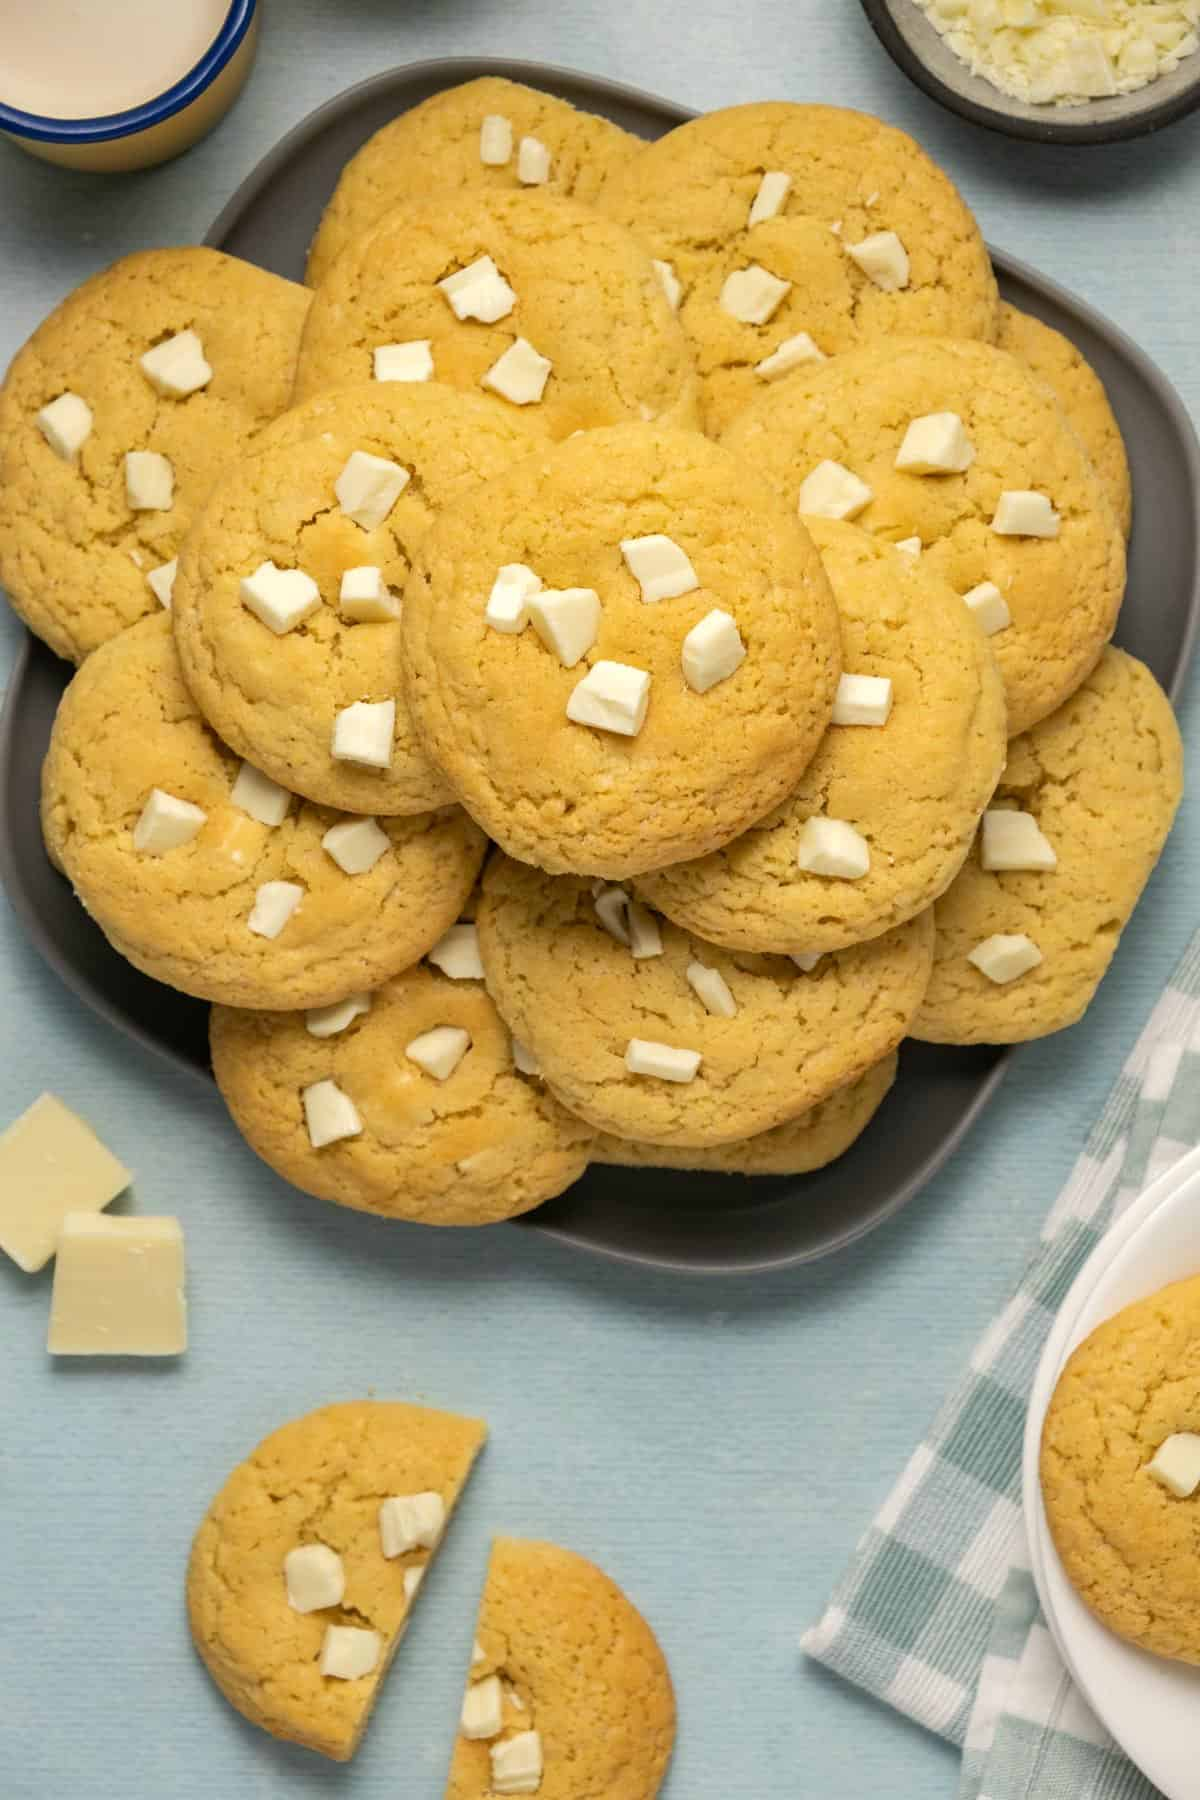 White chocolate chip cookies stacked up on a plate.